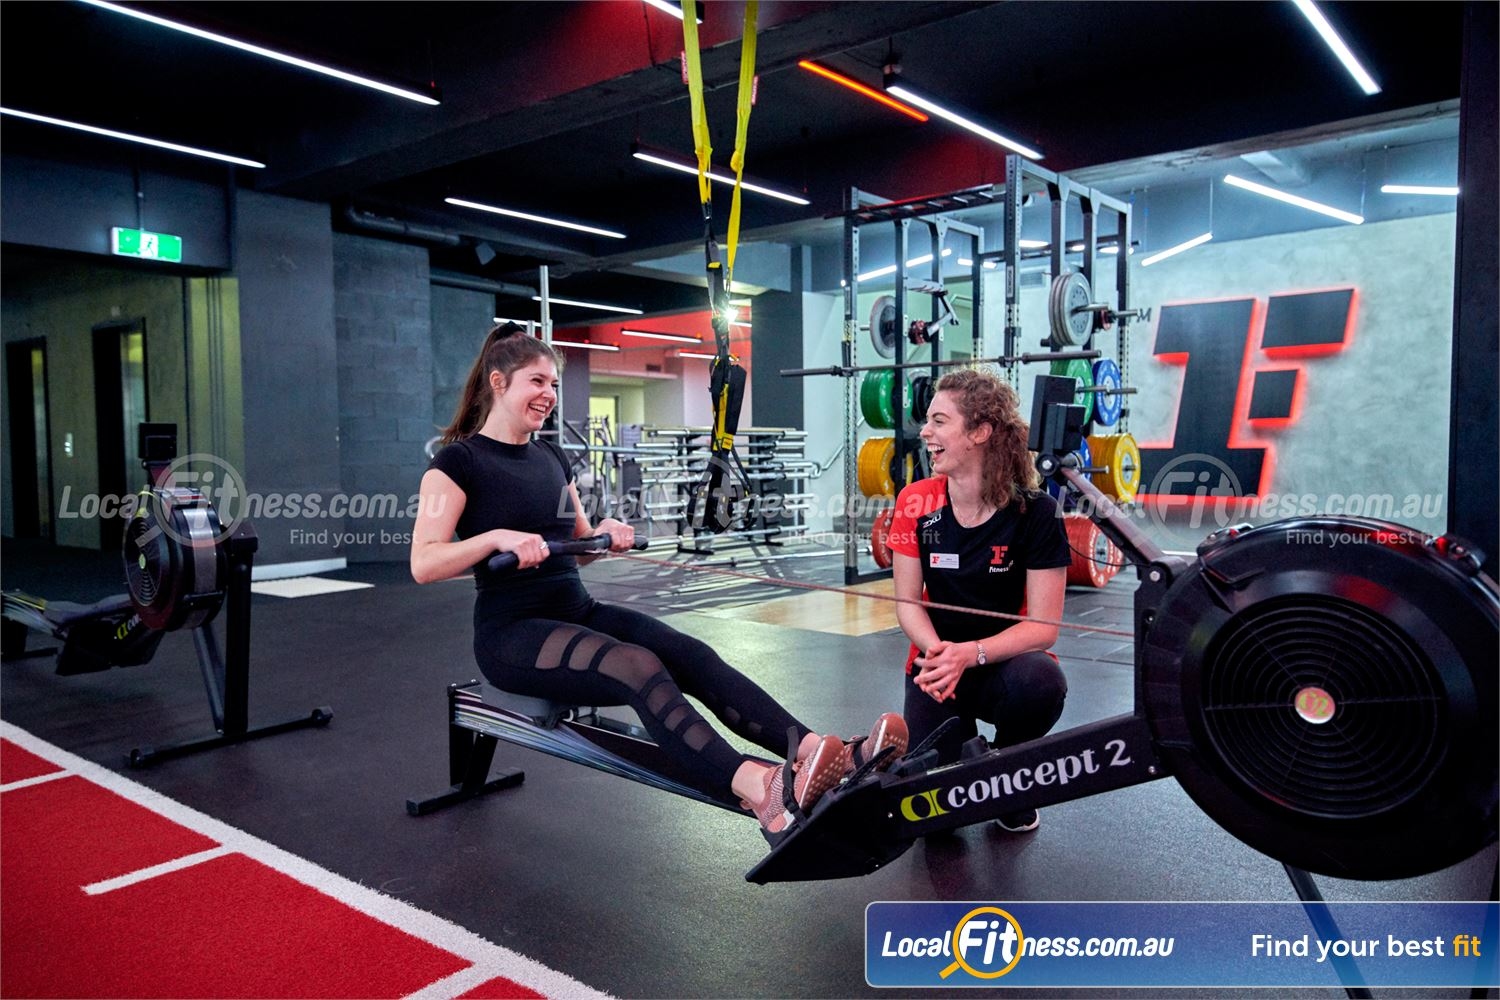 Fitness First Parramatta Our Parramatta gym team can challenge you with a HIIT rowing workout.